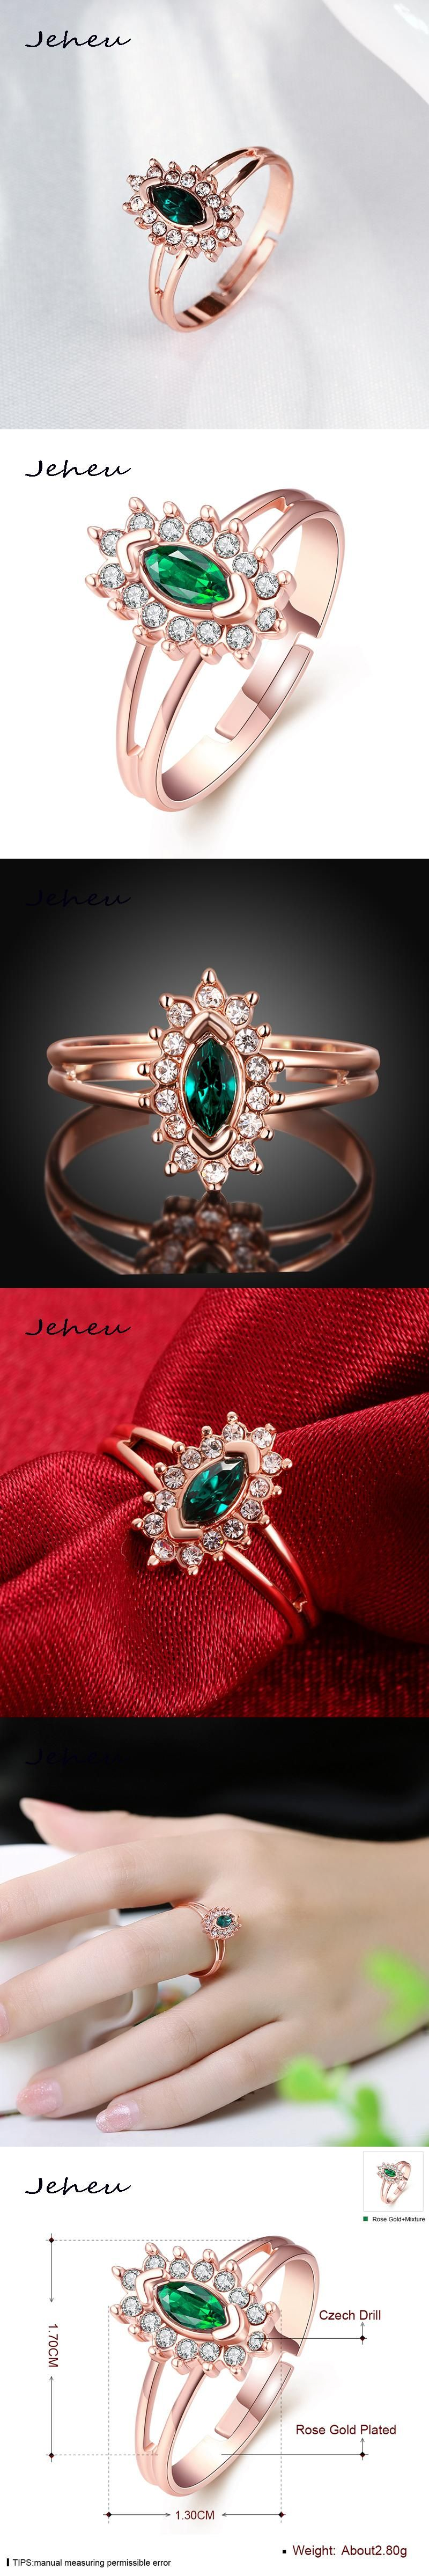 Sun Flower Elegant Lady Jewelry Green Zircon Rose Gold Ring Women